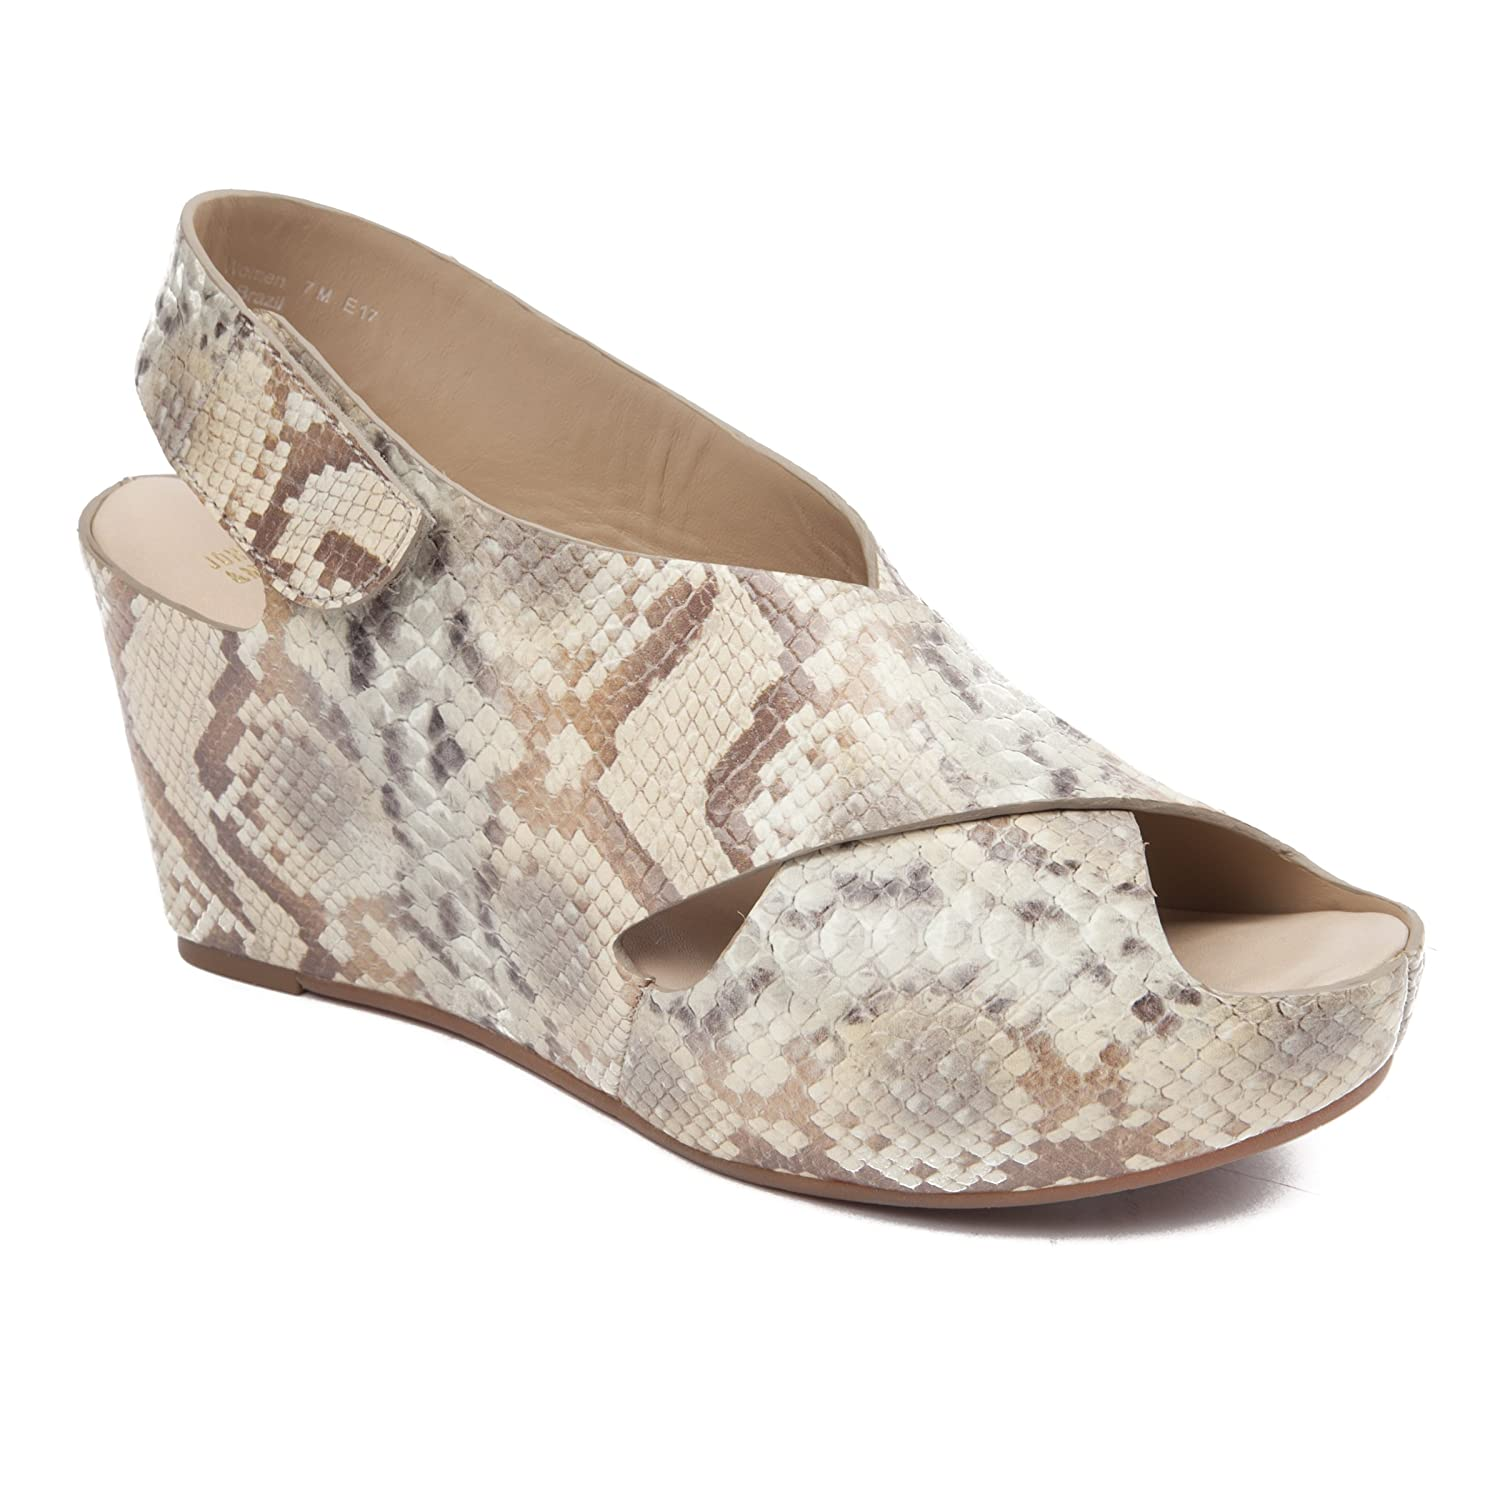 Johnston & Murphy Women's Tori Cross Strap Wedge Taupe Snake Print Leather B079TVVTJJ 7.5 B(M) US|Taupe Snake Print Leather